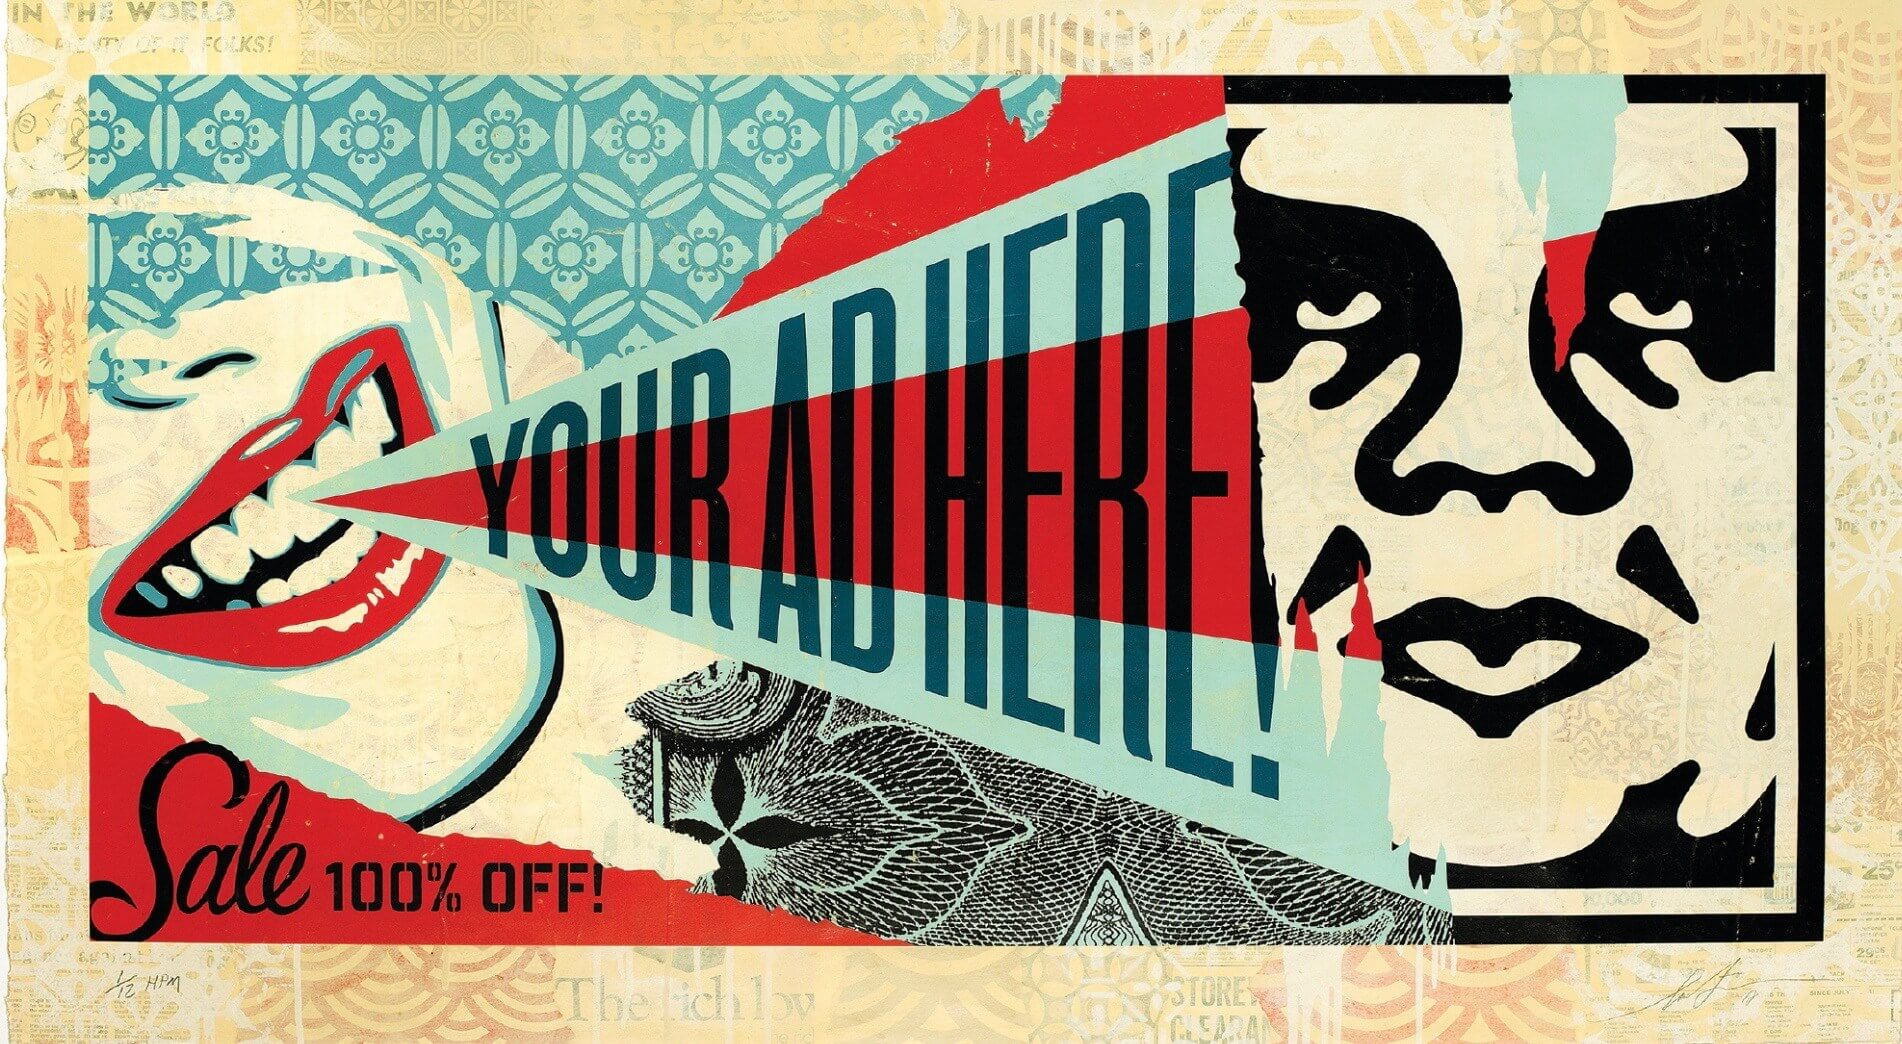 best-of-street-art-2018-obey-shepard-fairey-beyond-the-street.jpg